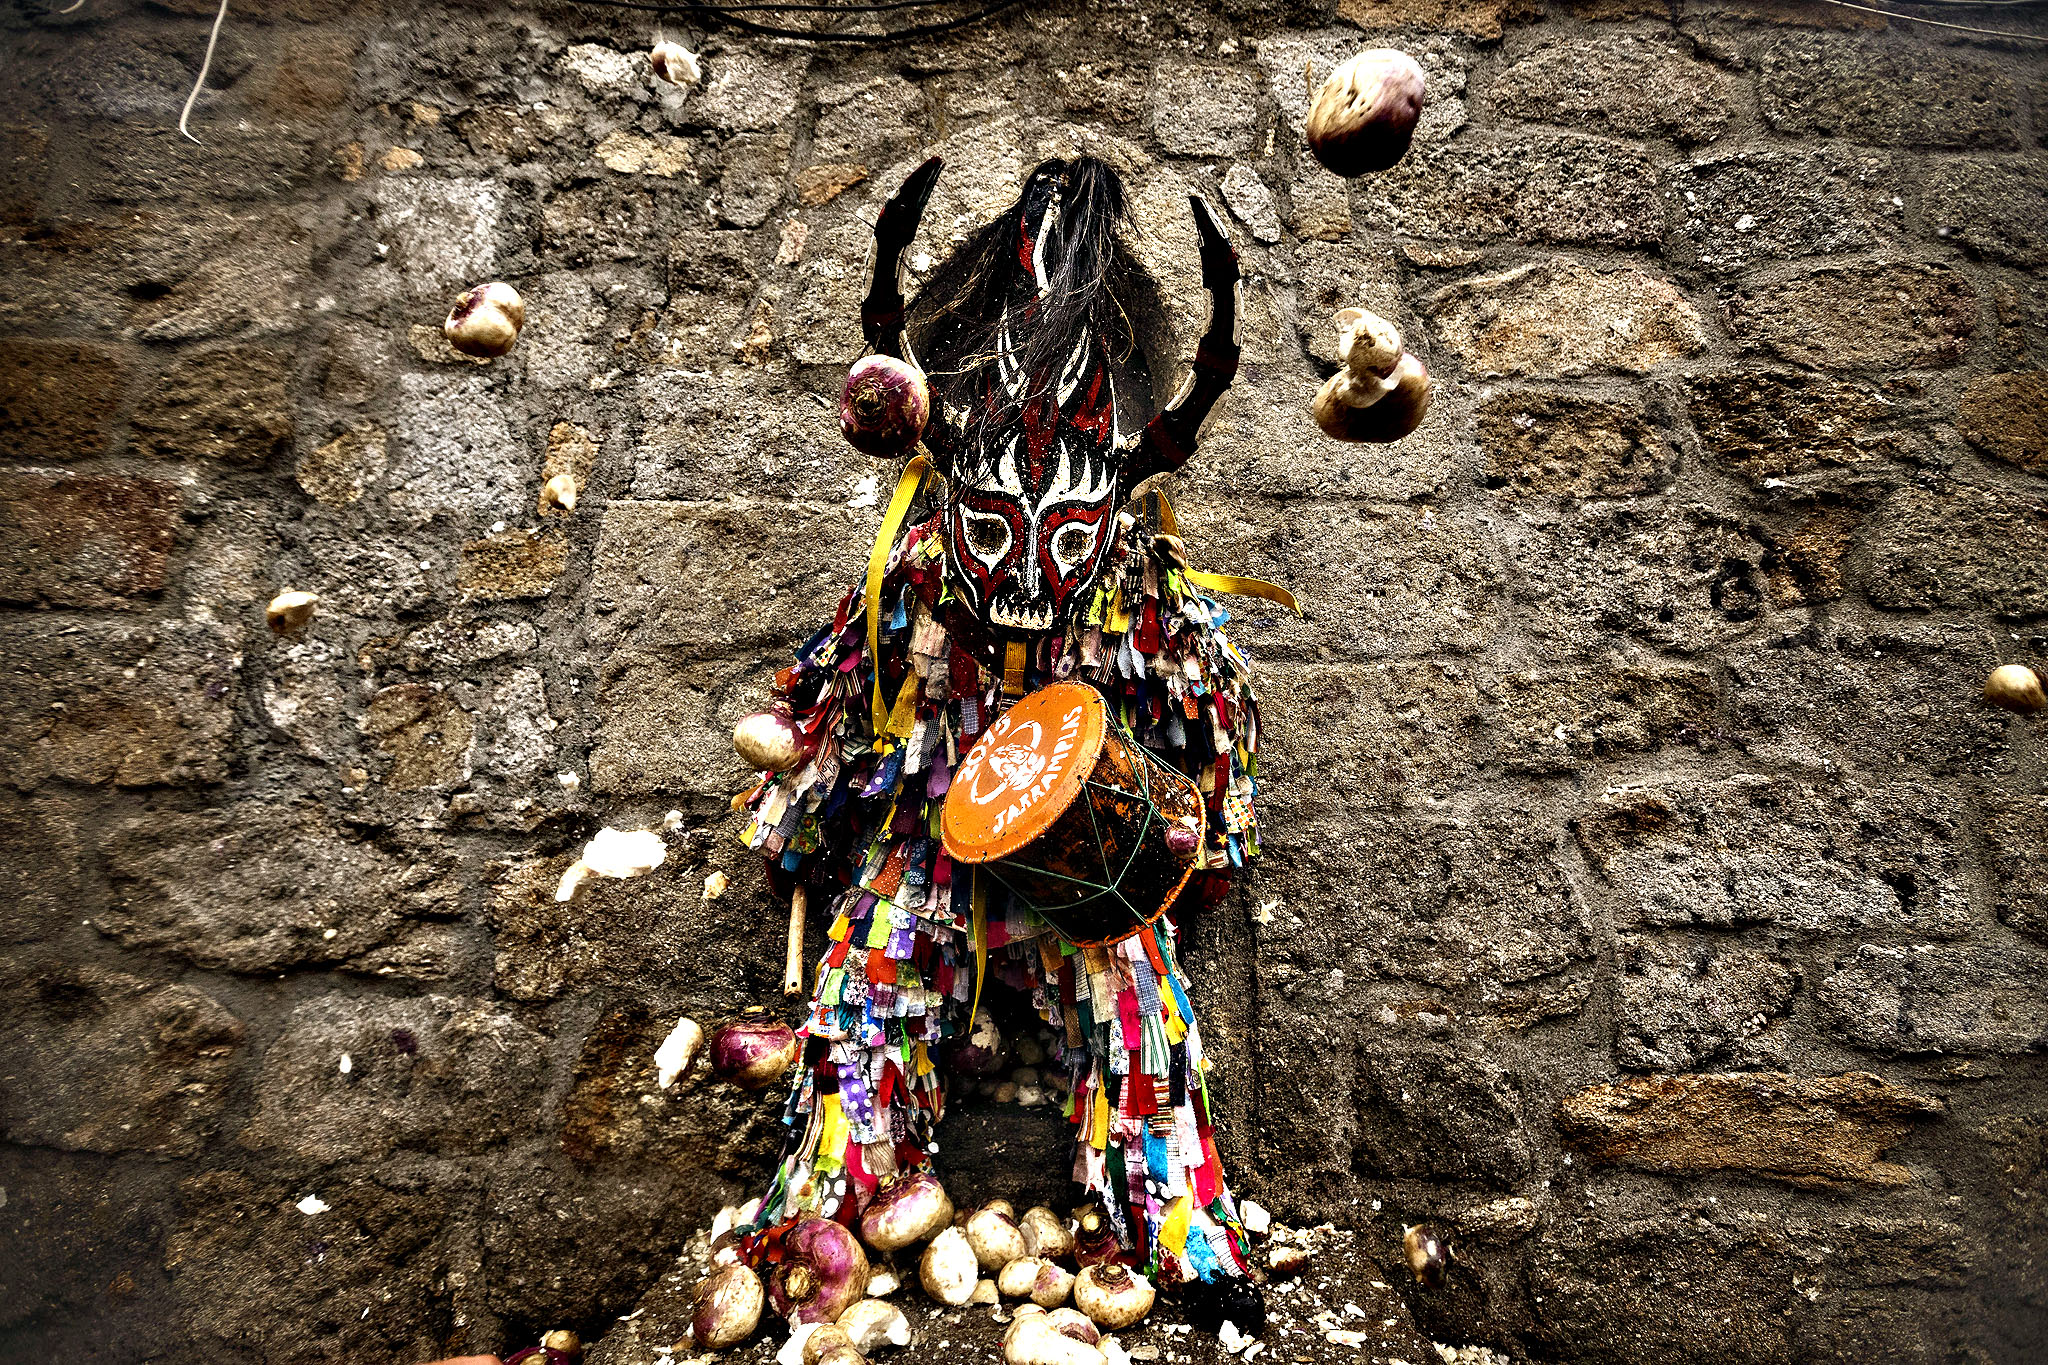 People throw turnips at the Jarramplas as he makes his way through the streets beating his drum during the Jarramplas Festival in Piornal, Spain, Tuesday, Jan. 20, 2015. Jarramplas is a character that wears a costume made from colorful strips of fabric, and a devil-like mask and beats a drum through the streets of Piornal while residents throw turnips as a punishment for stealing cattle. The exact origin of the festival are not known, various theories exist from the mythological punishment of Caco by Hercules, to a cattle thief ridiculed and expelled by his neighbors. The Jarramplas Festival takes place every year from the 19th till the 20th of January on Saint Sebastian Day.